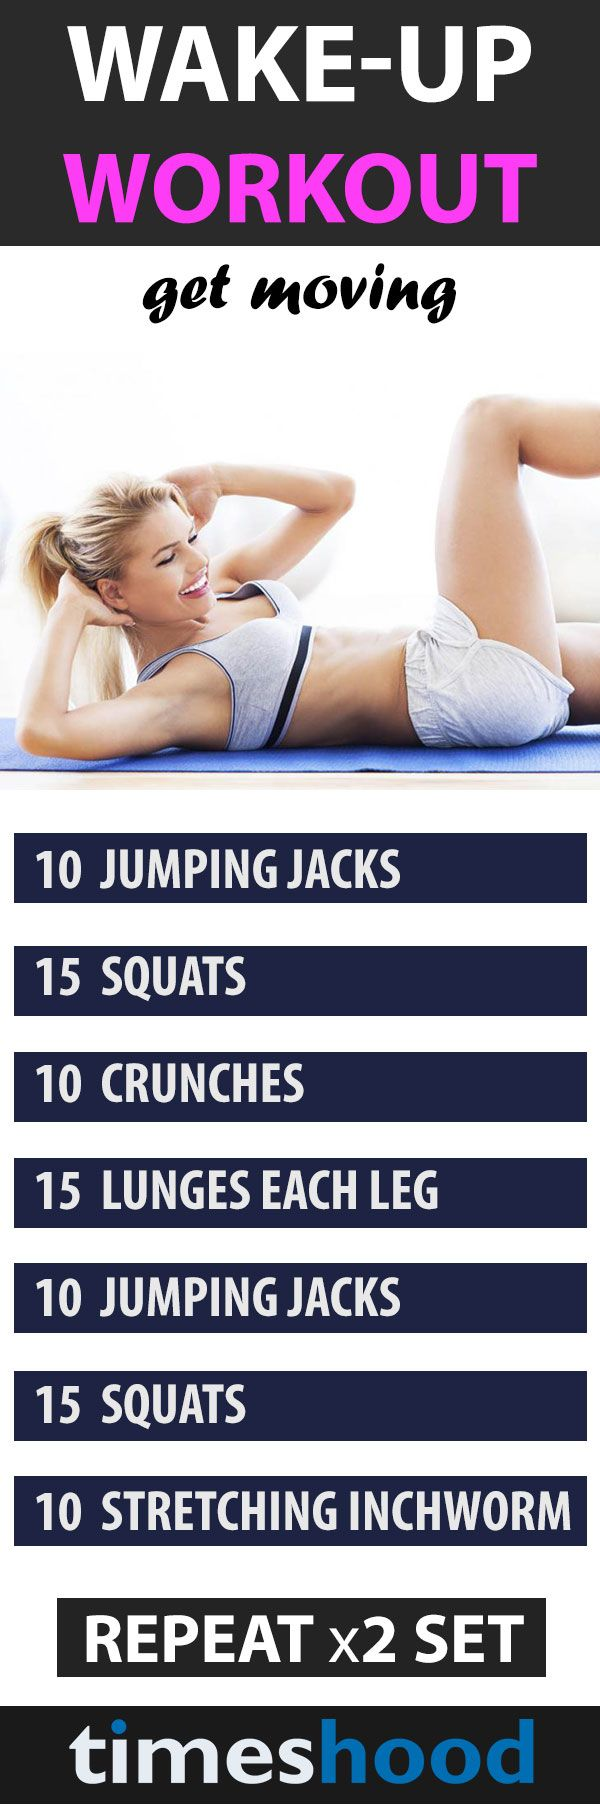 Tired of missing your workout and stressing over when to exercise? An early morning workout routine might be just what you need! Forget actually going to the gym. You can literally roll out of bed and do these 5 surprisingly effective moves in your PJs to get a jump on the morning.